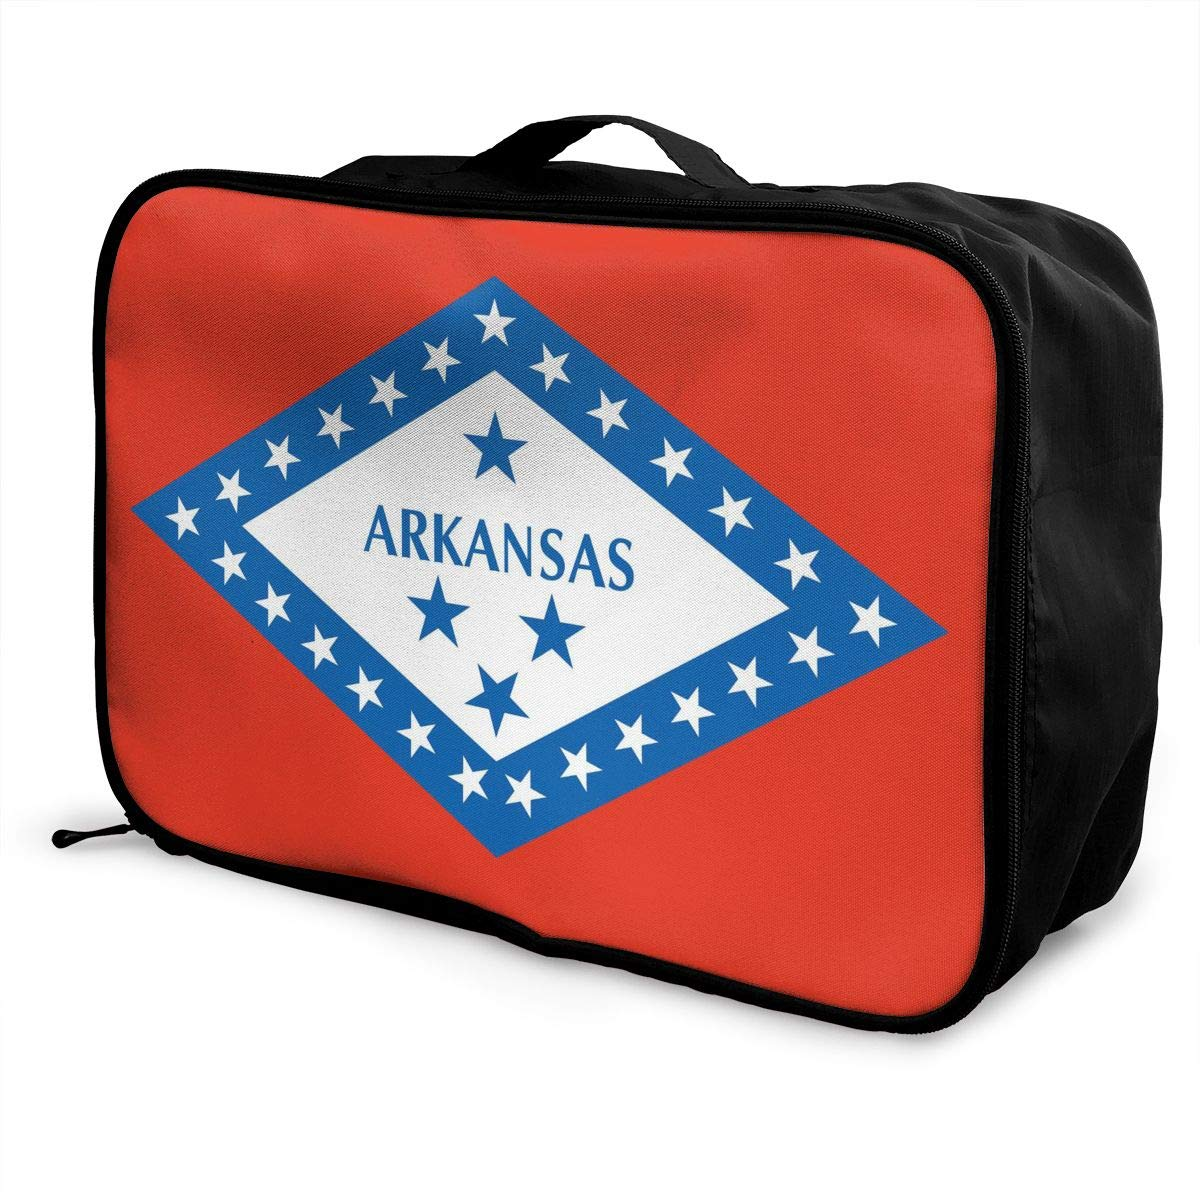 YueLJB Arkansas State Lightweight Large Capacity Portable Luggage Bag Travel Duffel Bag Storage Carry Luggage Duffle Tote Bag